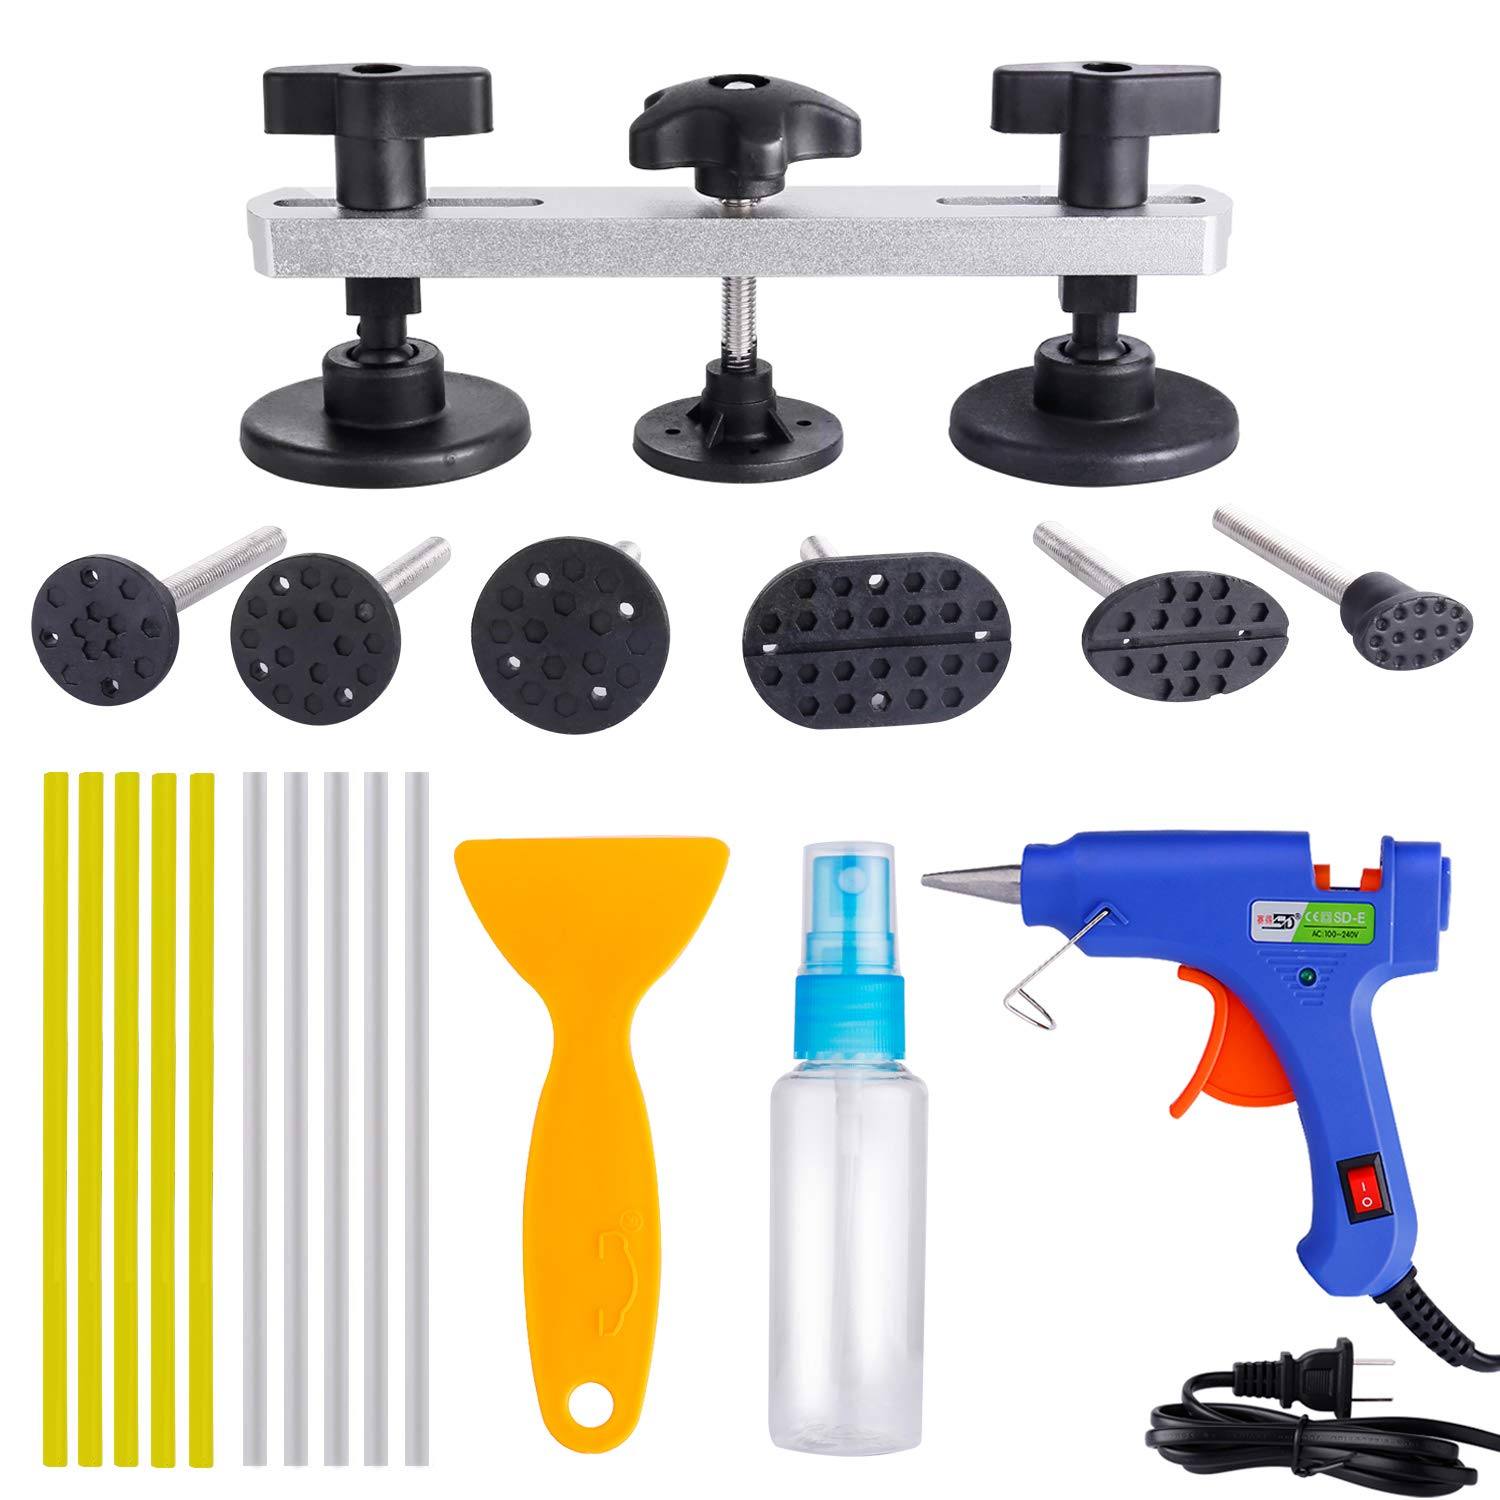 Pops a Dent Bridge Dent Puller Tool Kit, Car Dent Paintless Repair PDR Tools with Hot Melt Glue Gun + 10 Pcs High Adhesive Glue Sticks + Glue Scraper + Alcohol Spray Bottle for Auto Truck Dent Removal